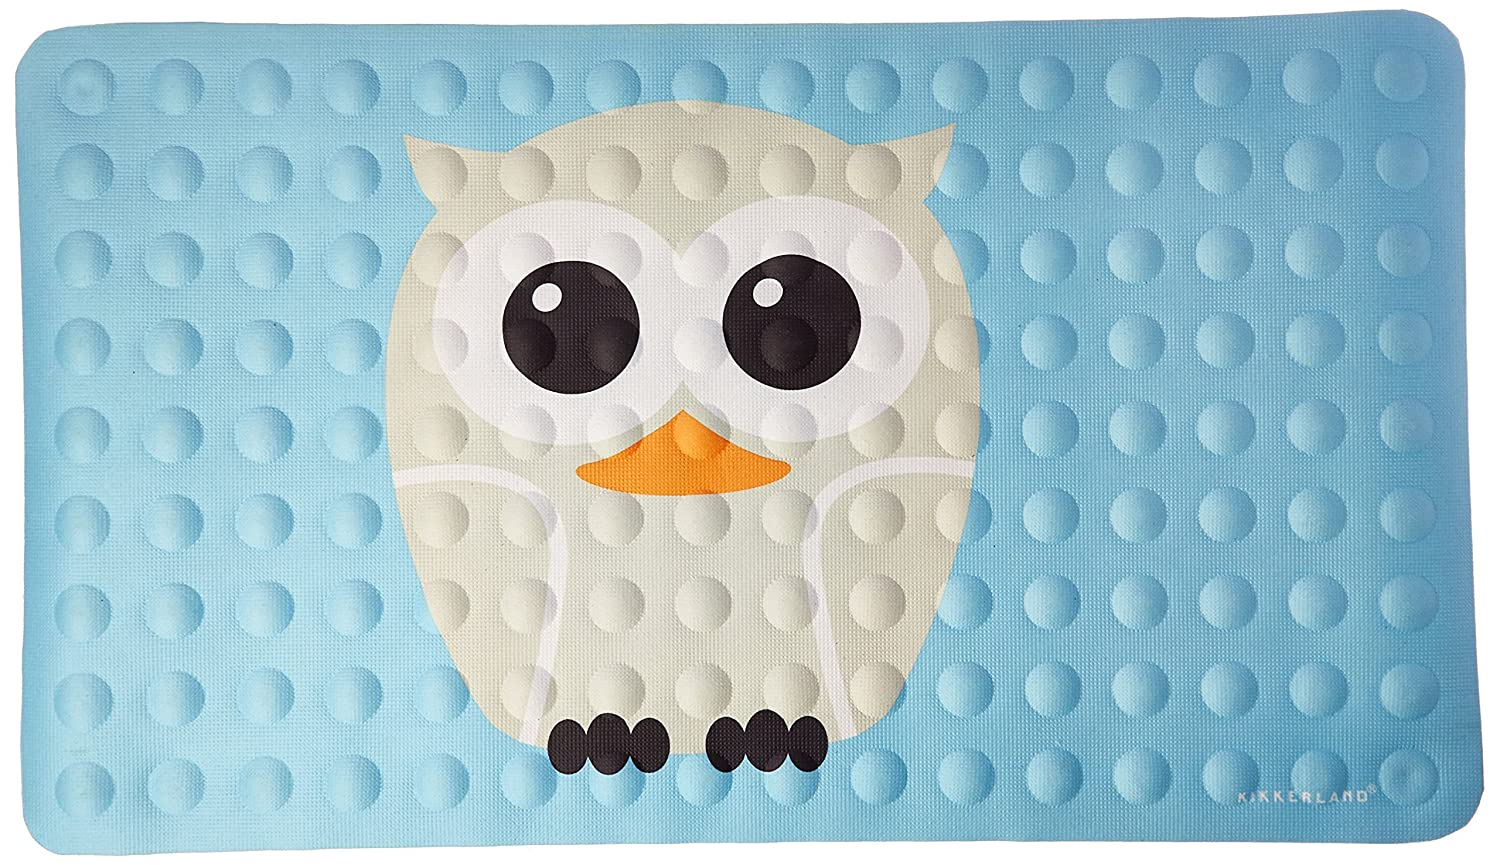 Kikkerland Bathmat, Owl, Natural Rubber High Grip Suction Cup, 27 by 15-inches HW20